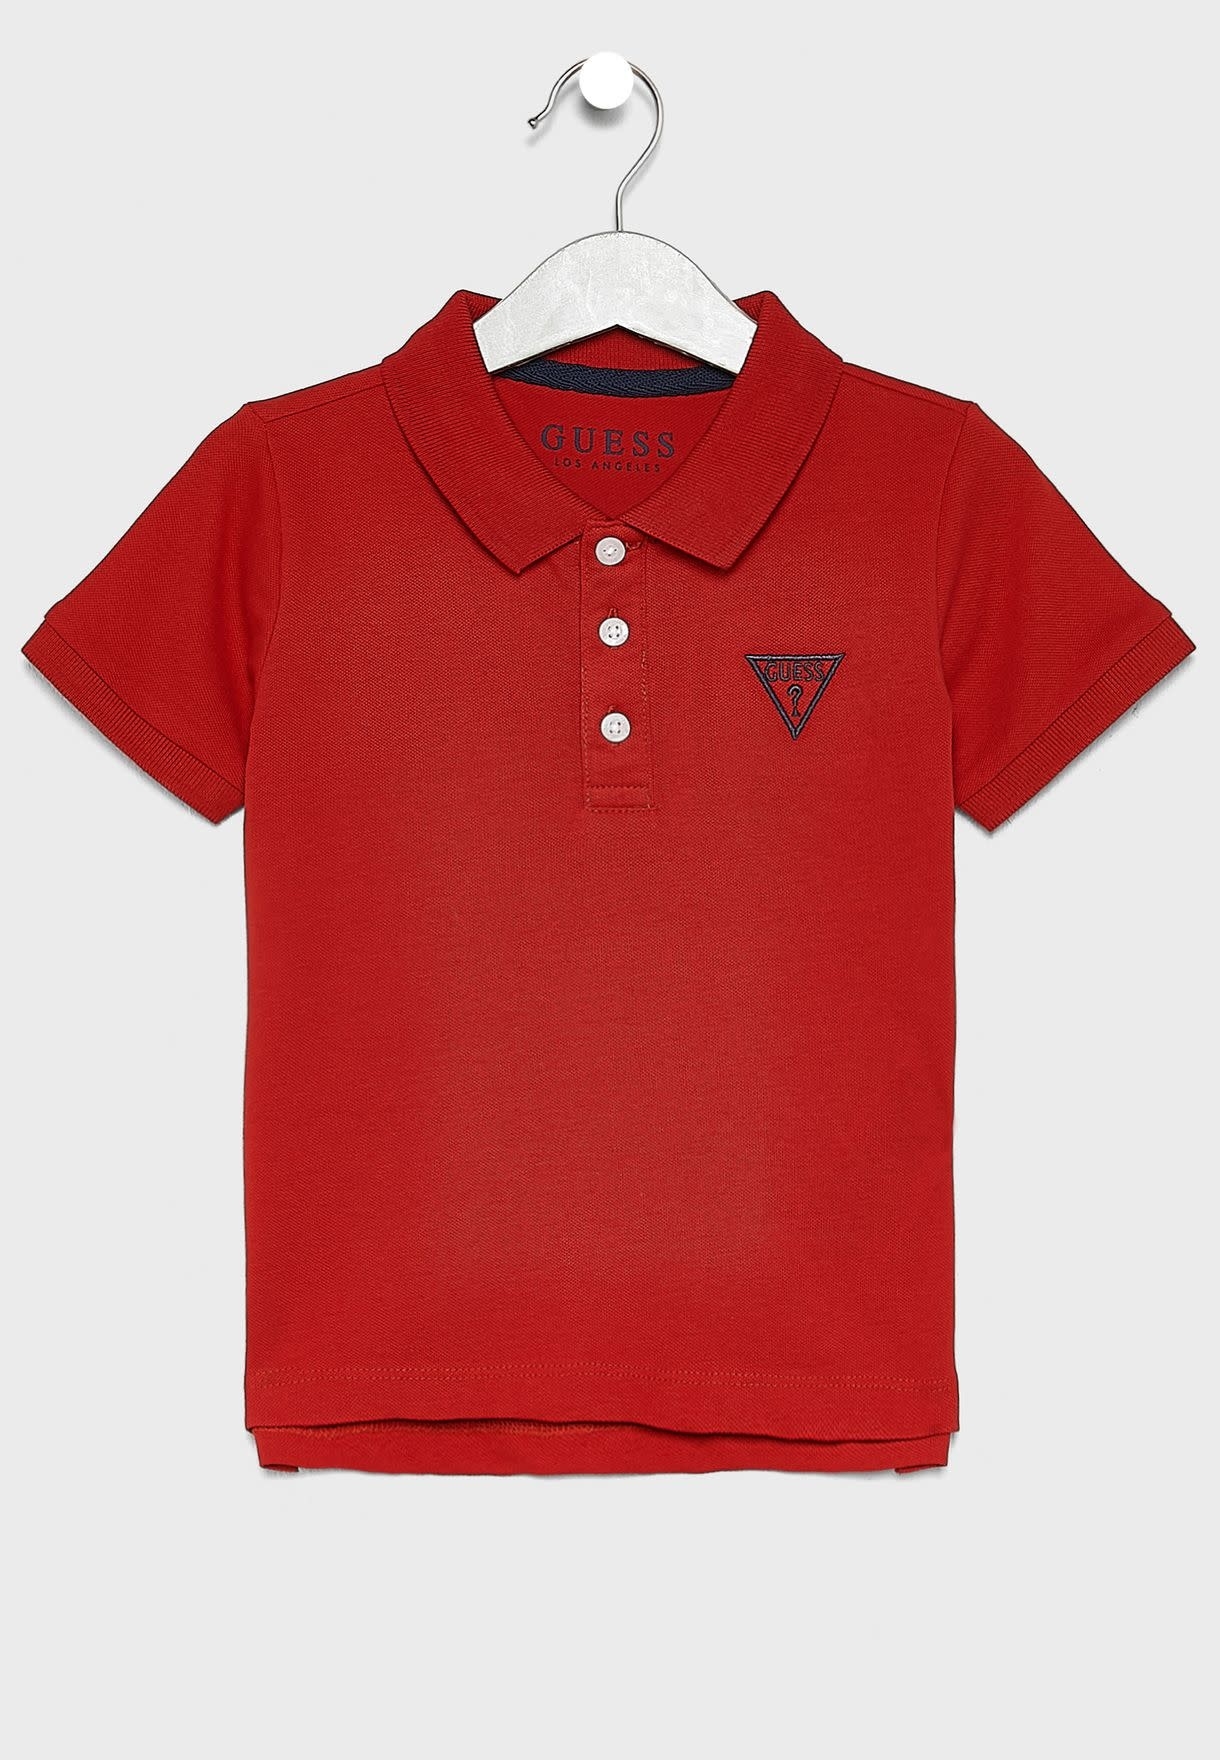 Guess GUESS BOYS RED POLO-SHIRT WITH LOGO